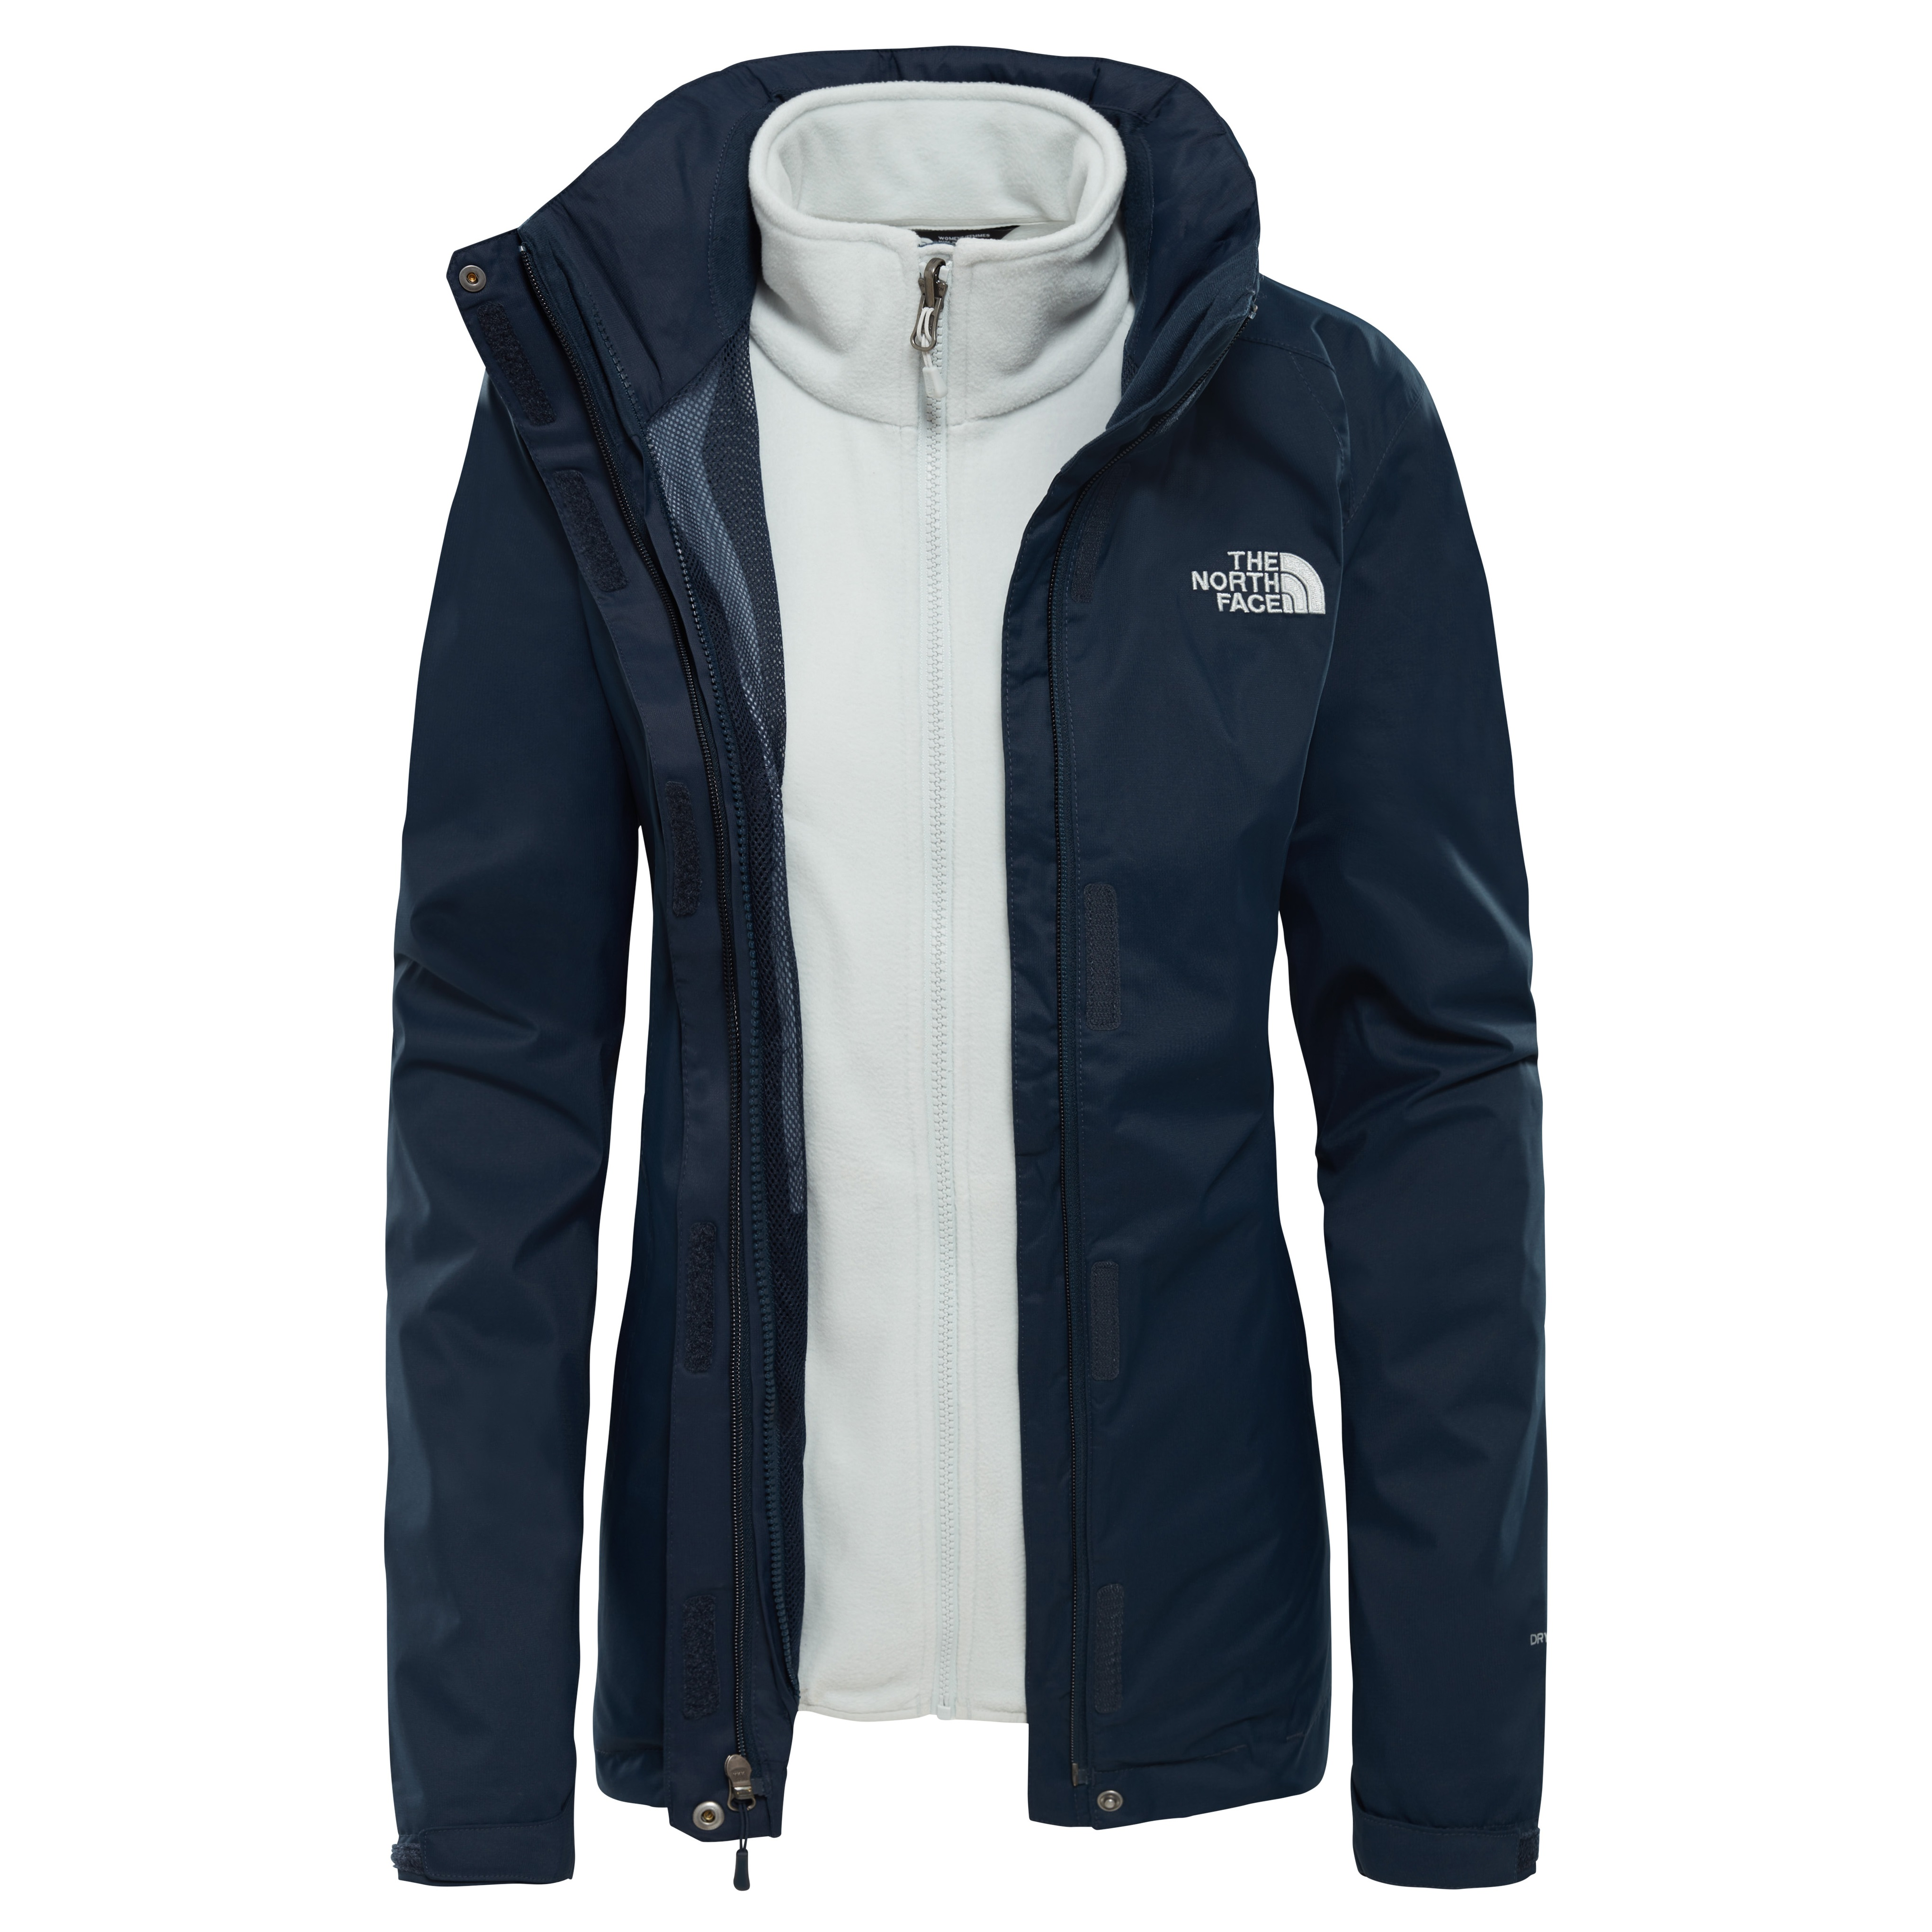 THE NORTH FACE W EVOLVE TRICLIMATE JKT - gallery 0 4140e8e9c2ef